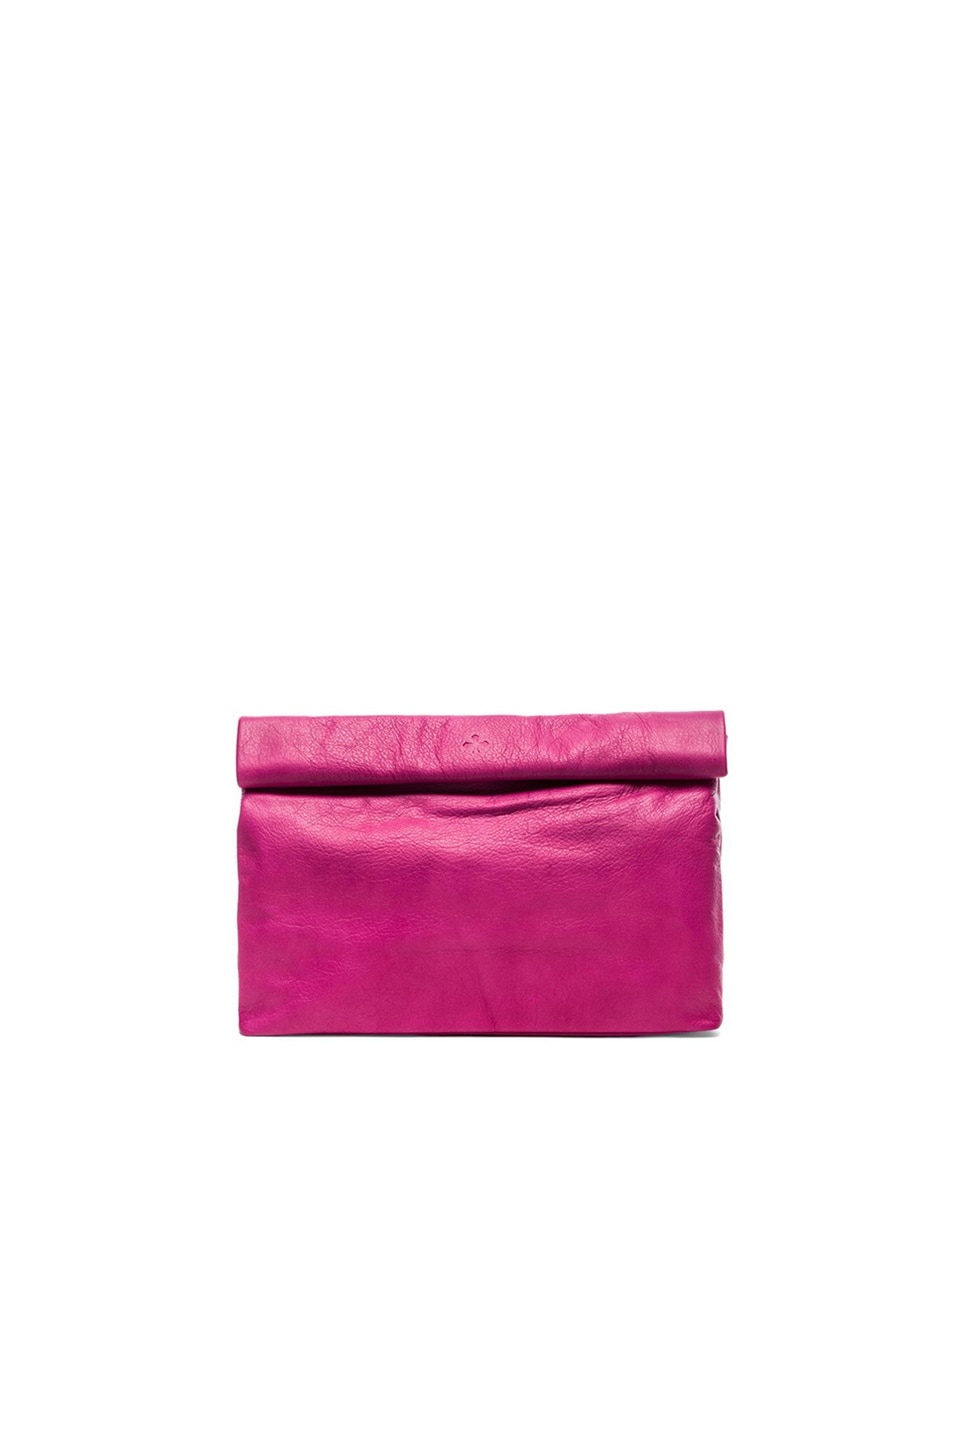 Marie Turnor The Lunch Clutch in Pebble Hot Pink